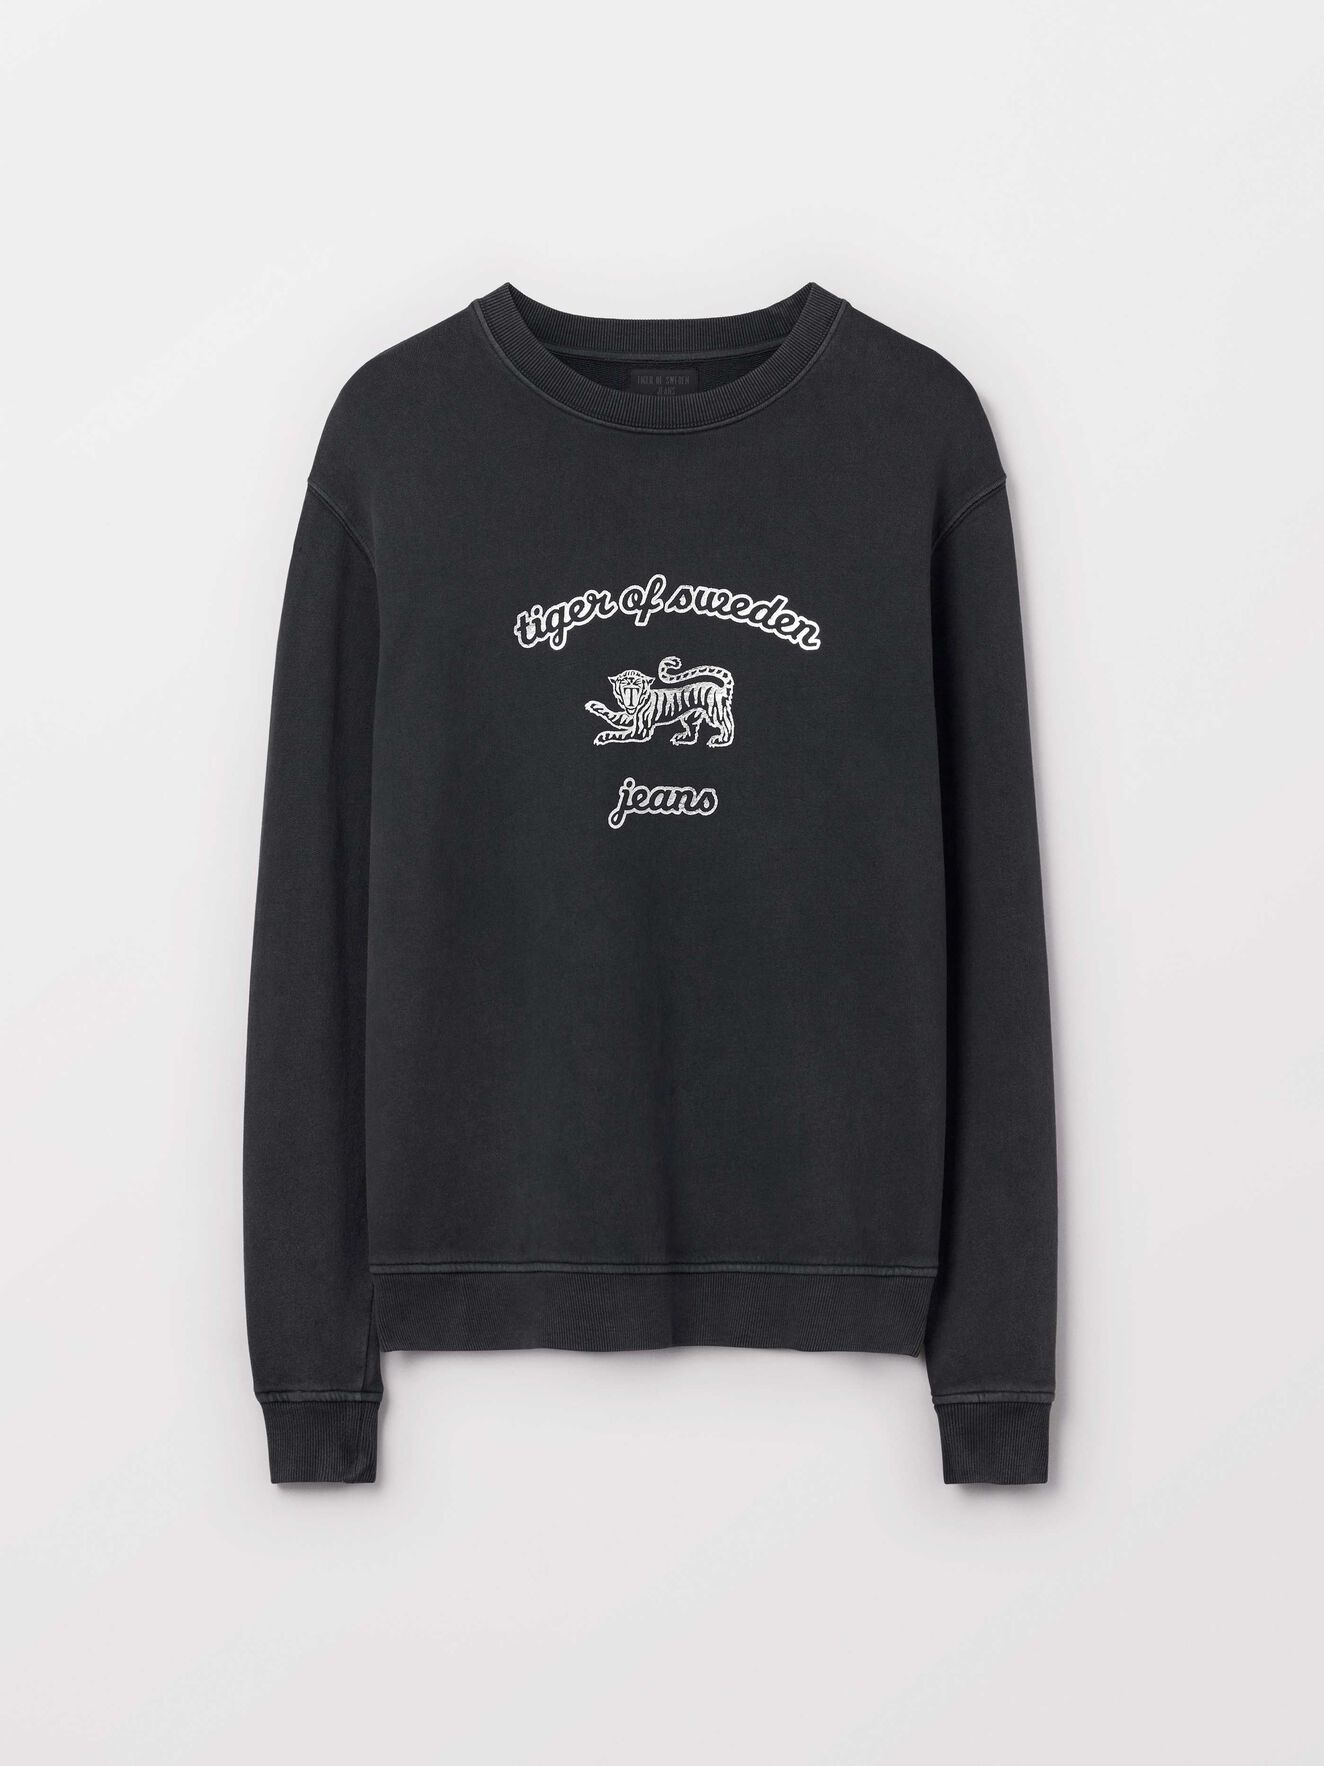 Tana O Sweatshirt in Black from Tiger of Sweden